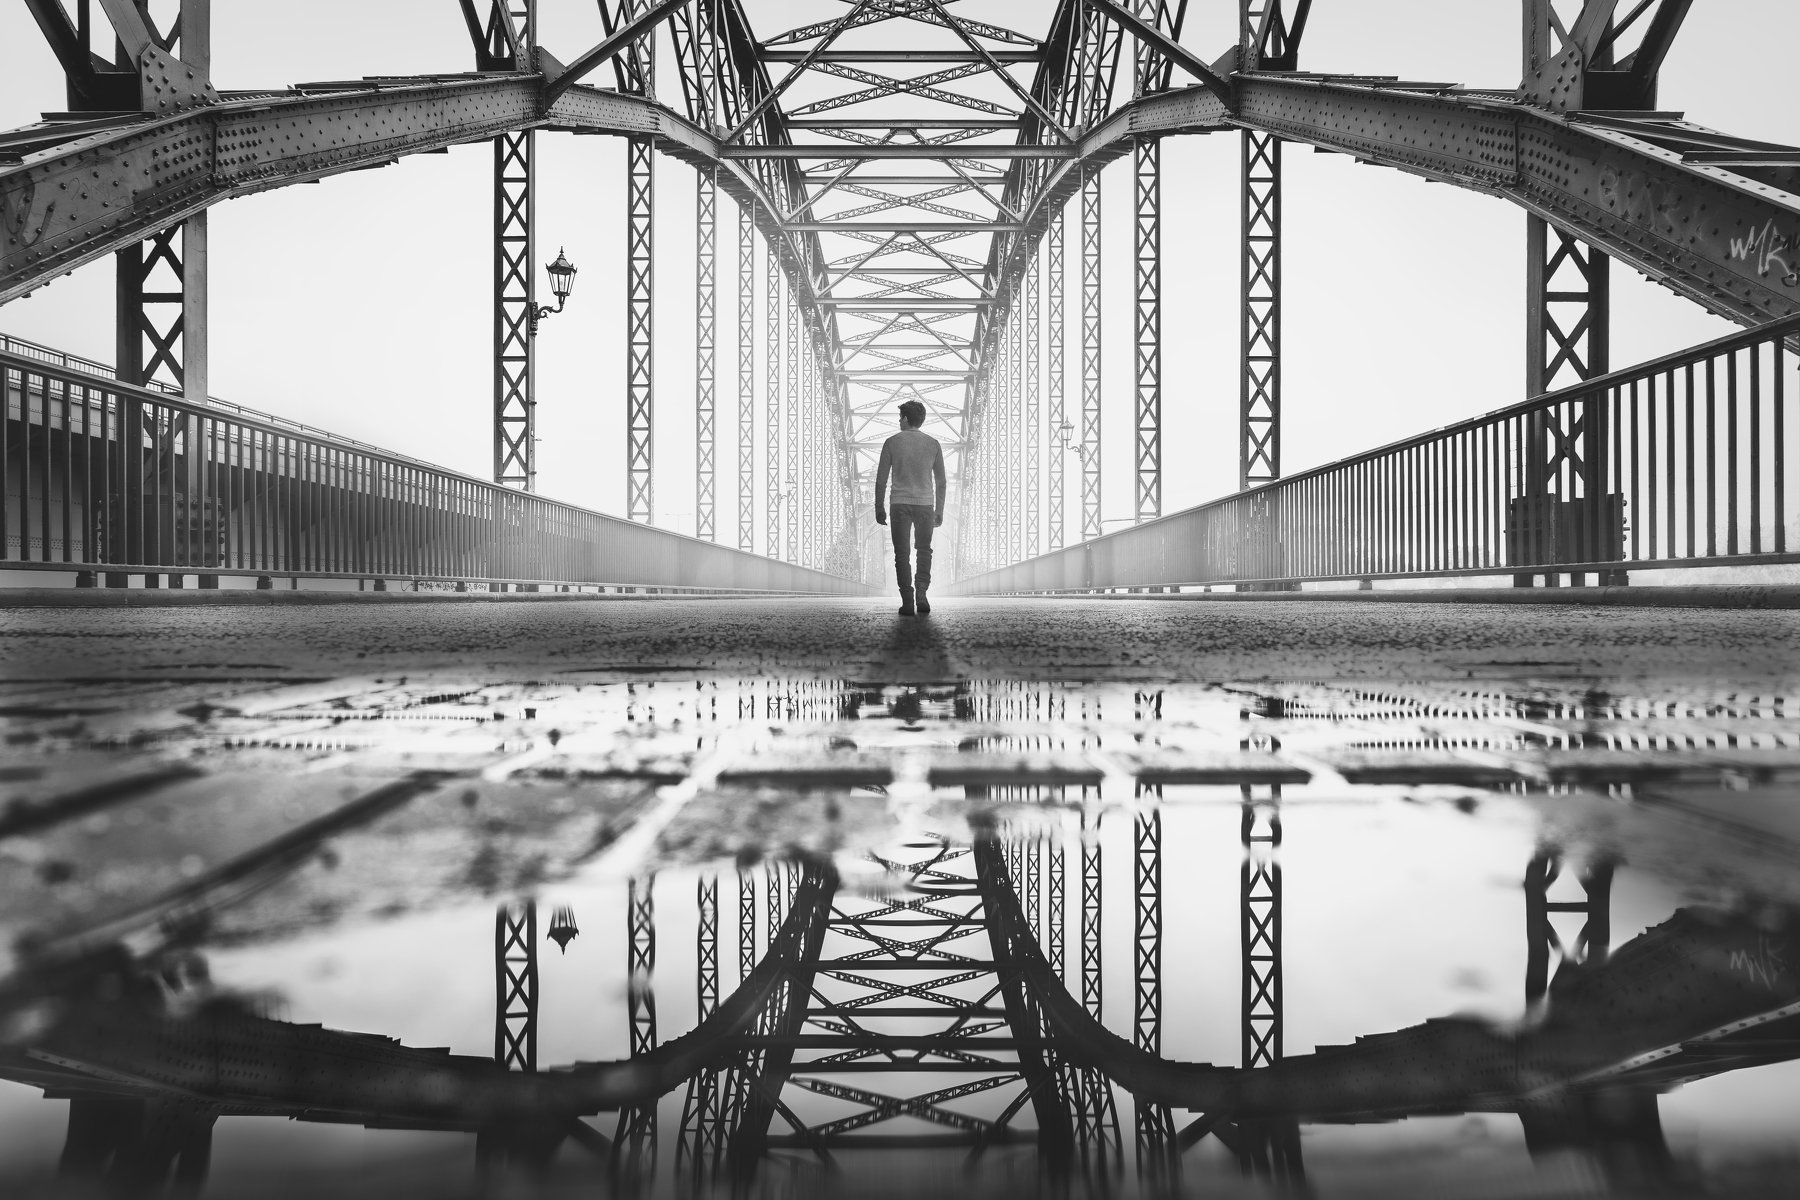 hamburg, germany, bridge, reflection, puddle, water, rain, urban, street, people, Alexander Schönberg